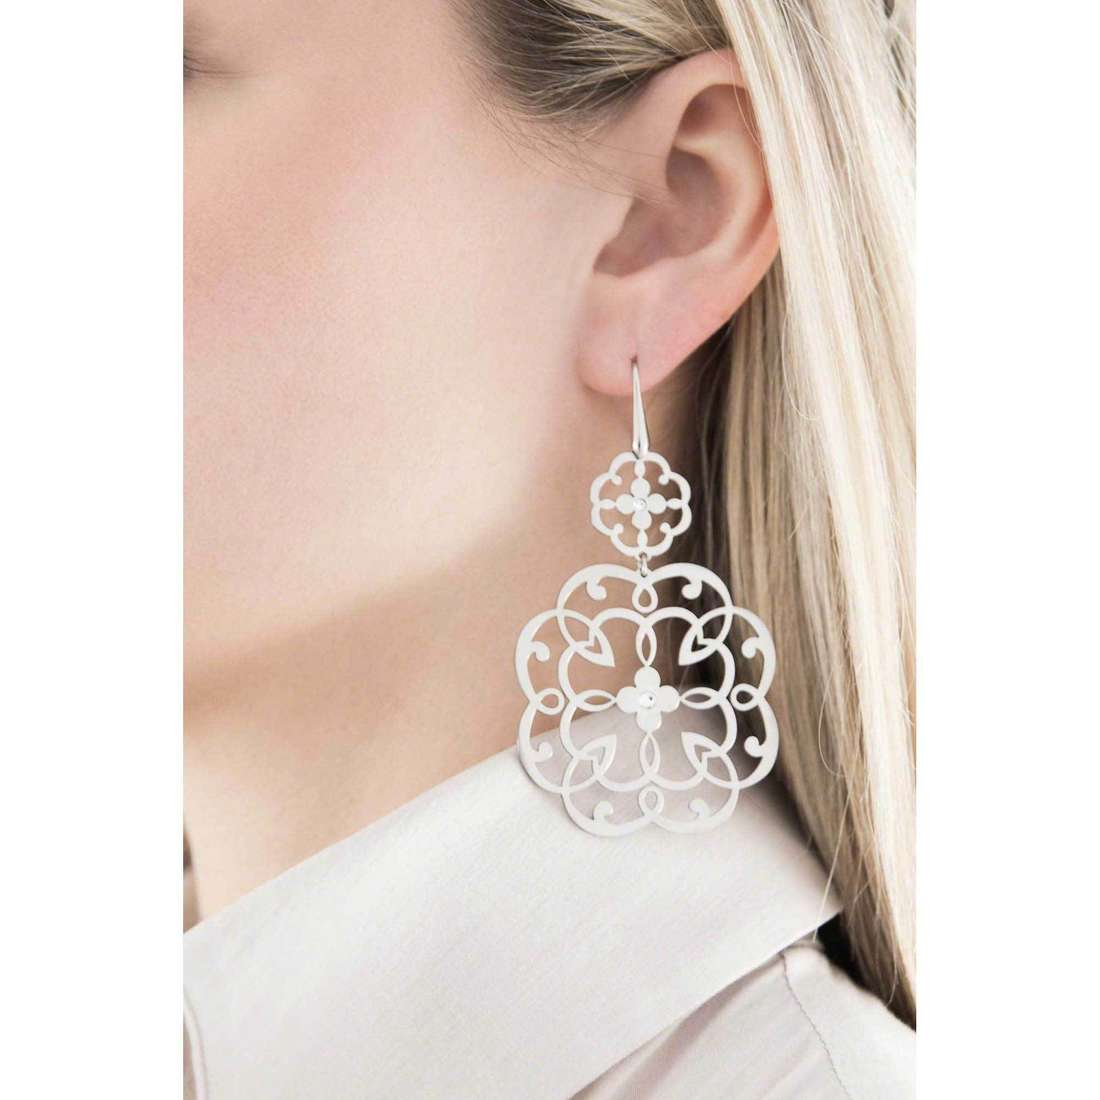 Morellato earrings Arabesco woman SAAJ11 indosso